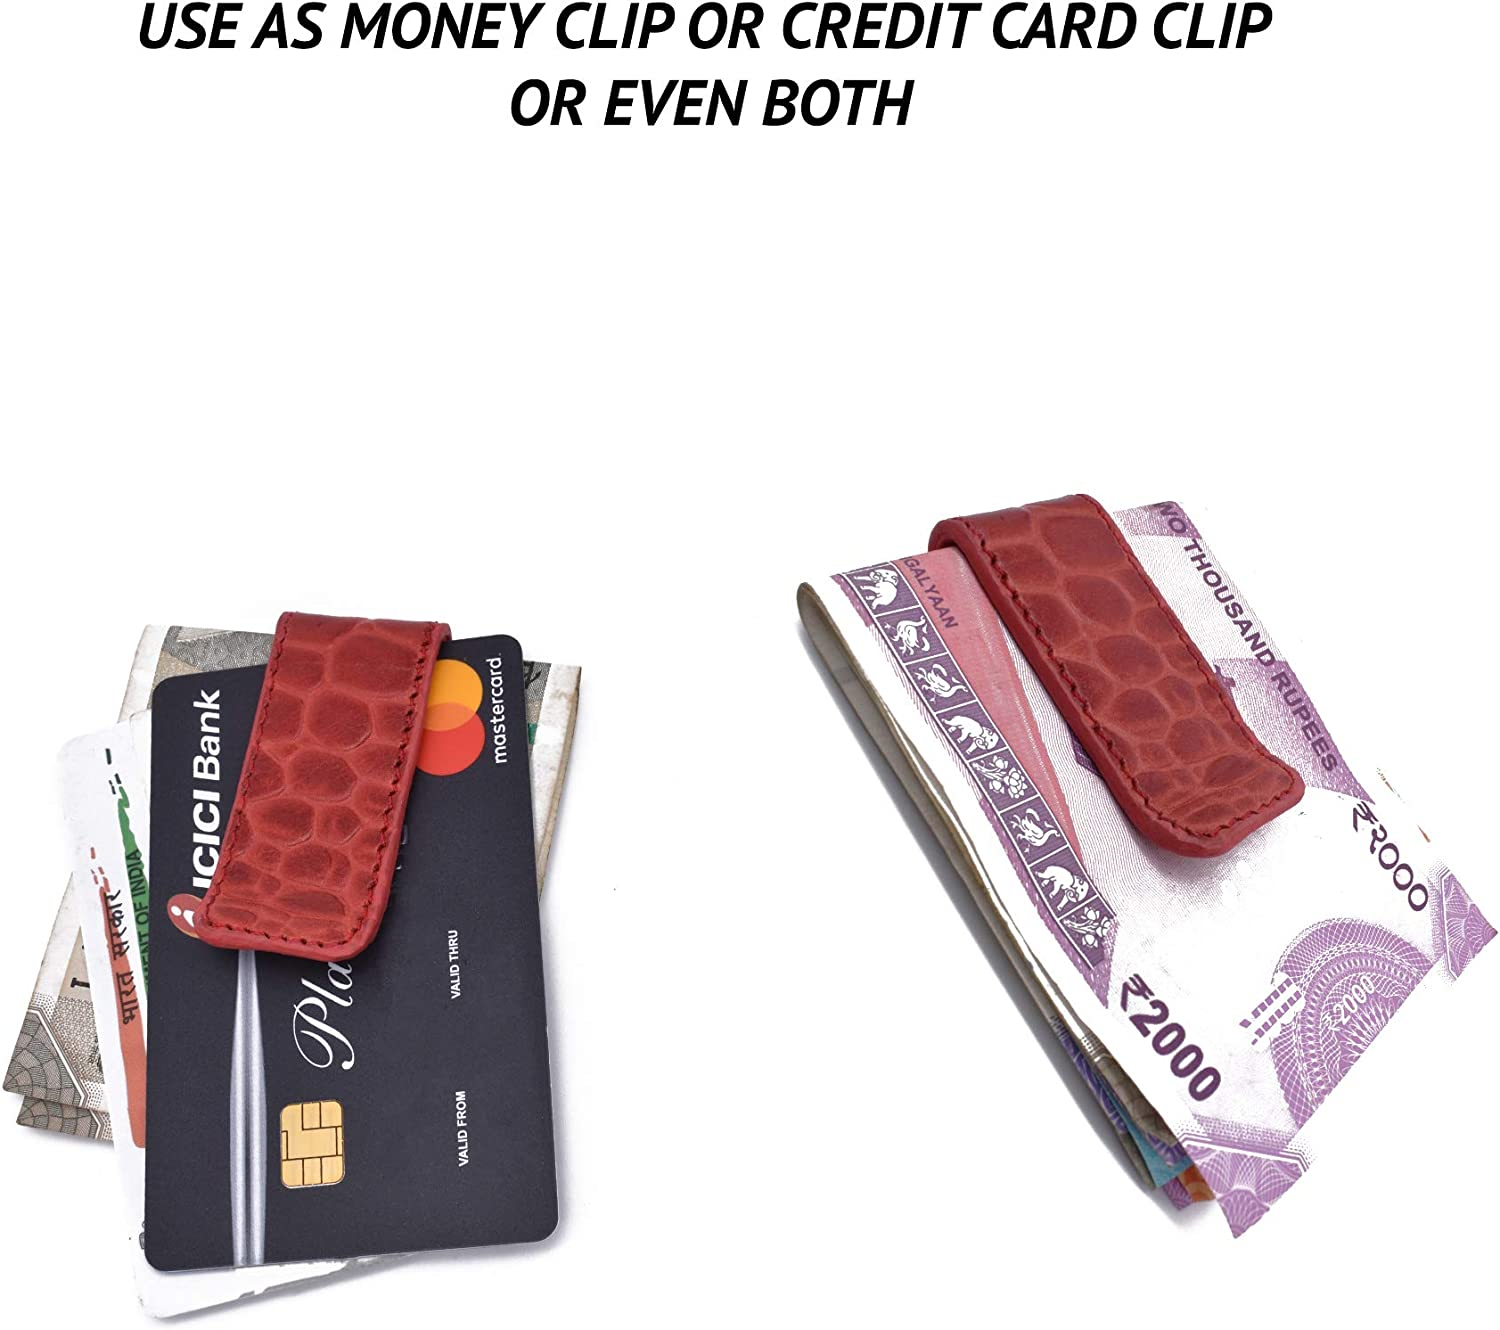 Adamis Minimalist Leather Money Clip Wallet for Credit, Business And Other Cards Soft Compact Holder for Men Slim Design Front Pocket Strong And Modern Look Multipurpose Card Clip, 7 cm